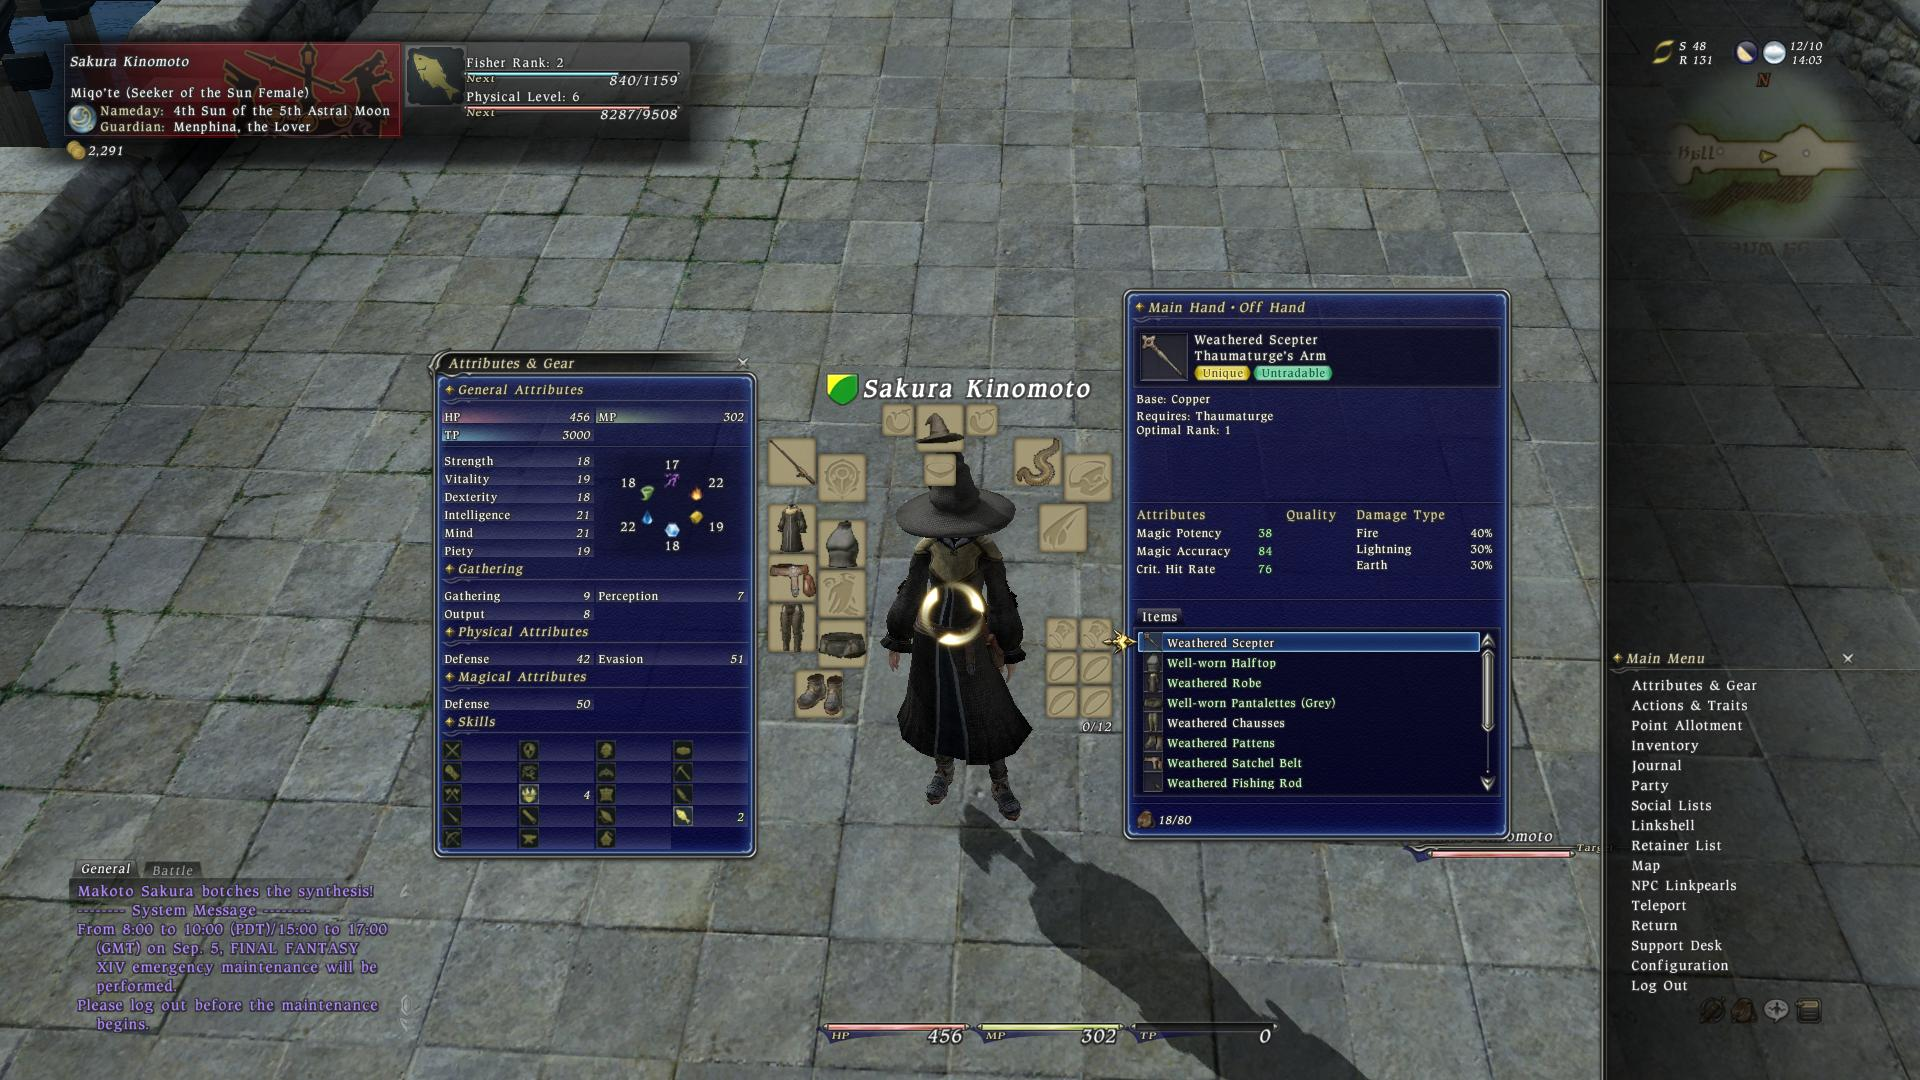 Final Fantasy XIV Daily Digest #2 - 03